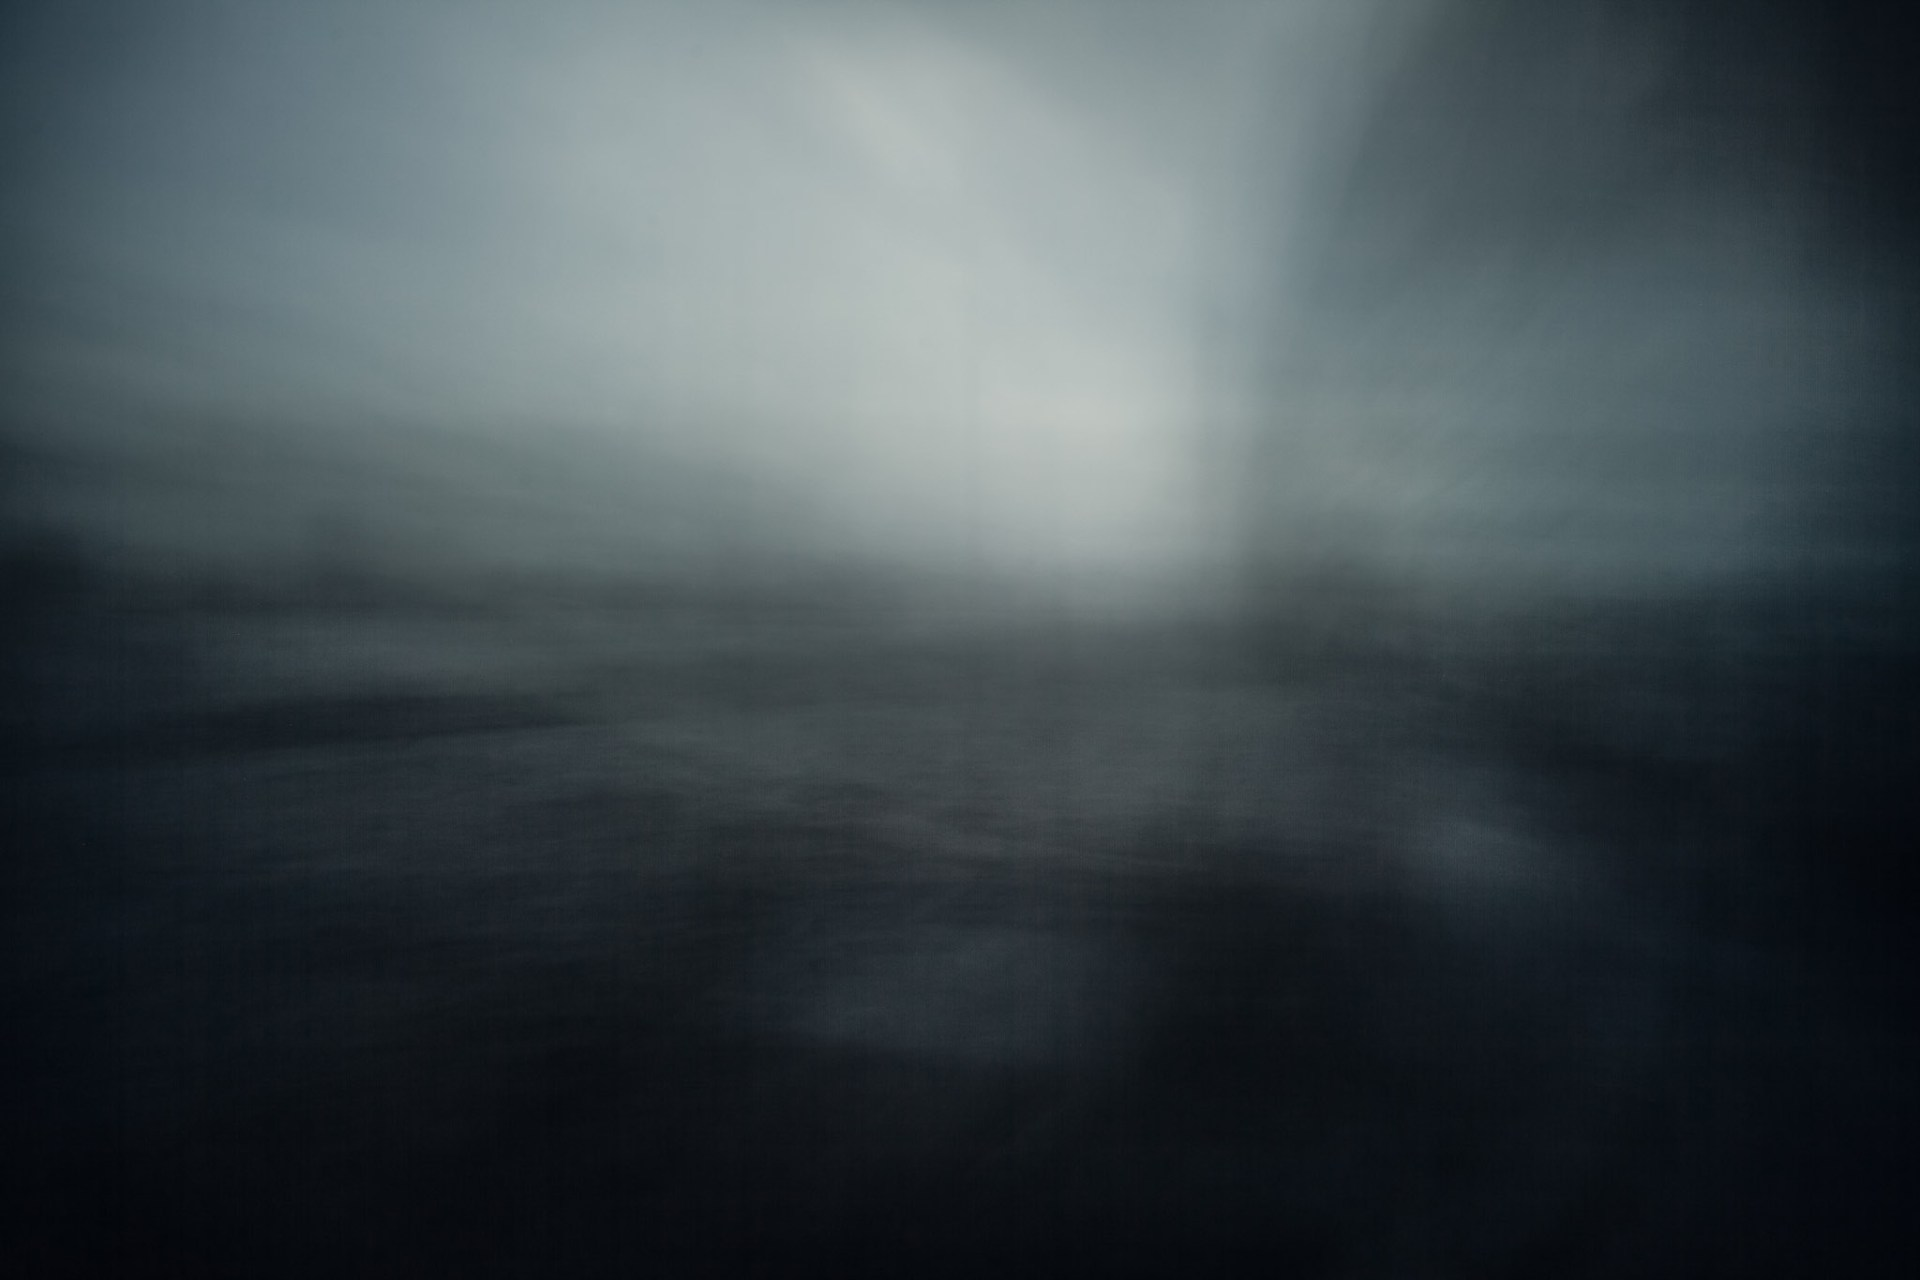 A blurred image of the Ij river in Amsterdam